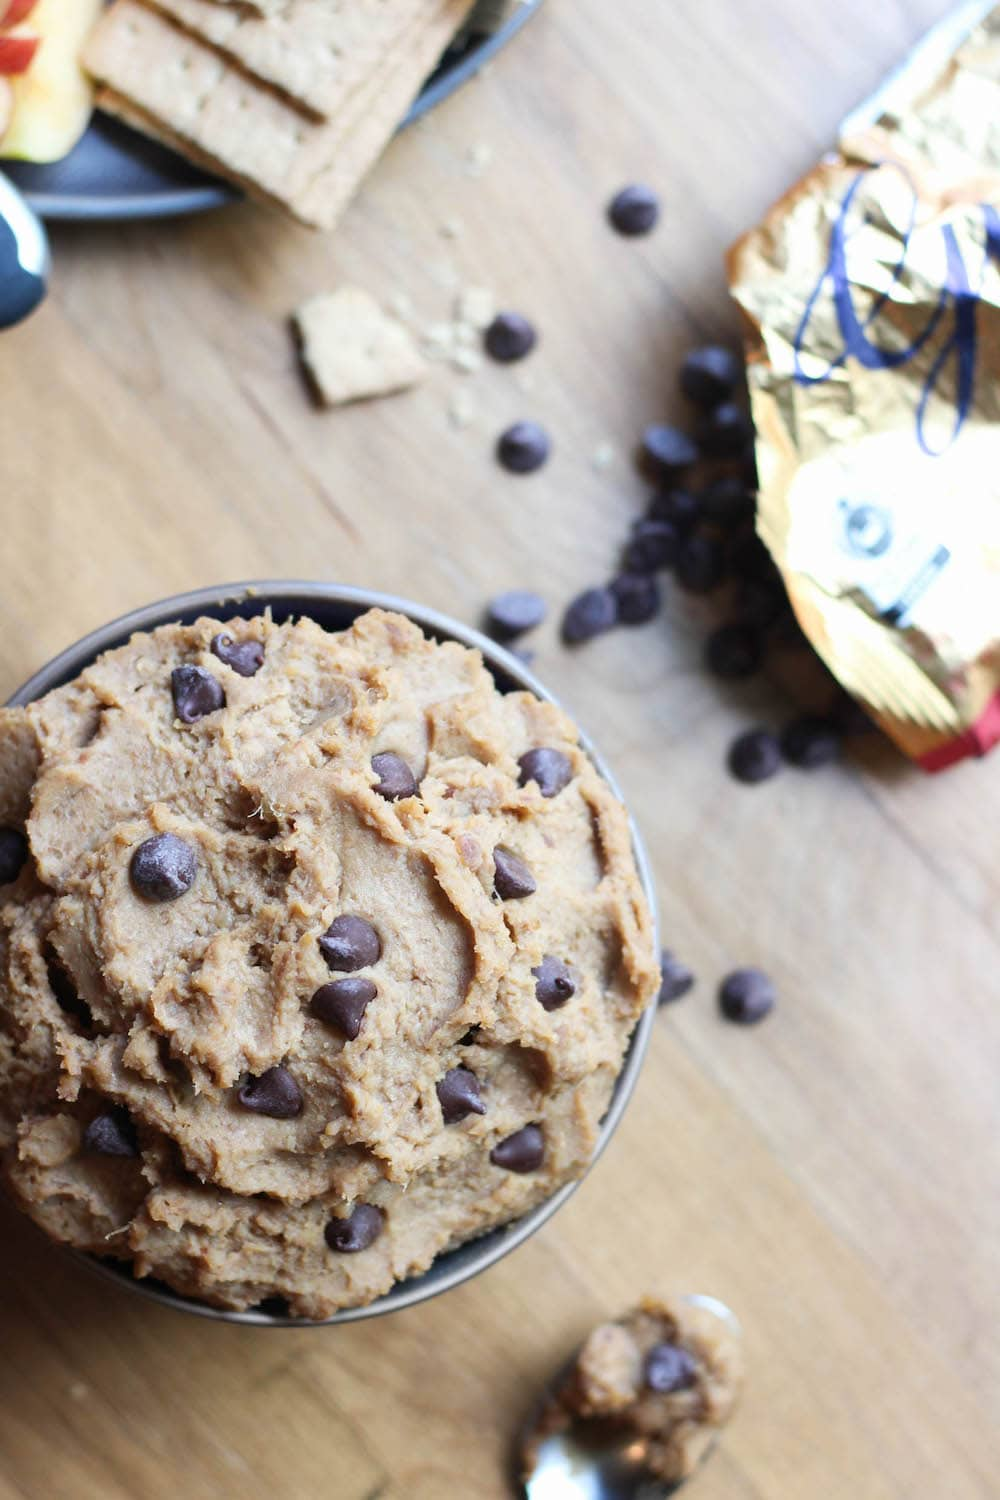 Chickpea Cookie Dough Whole Foods